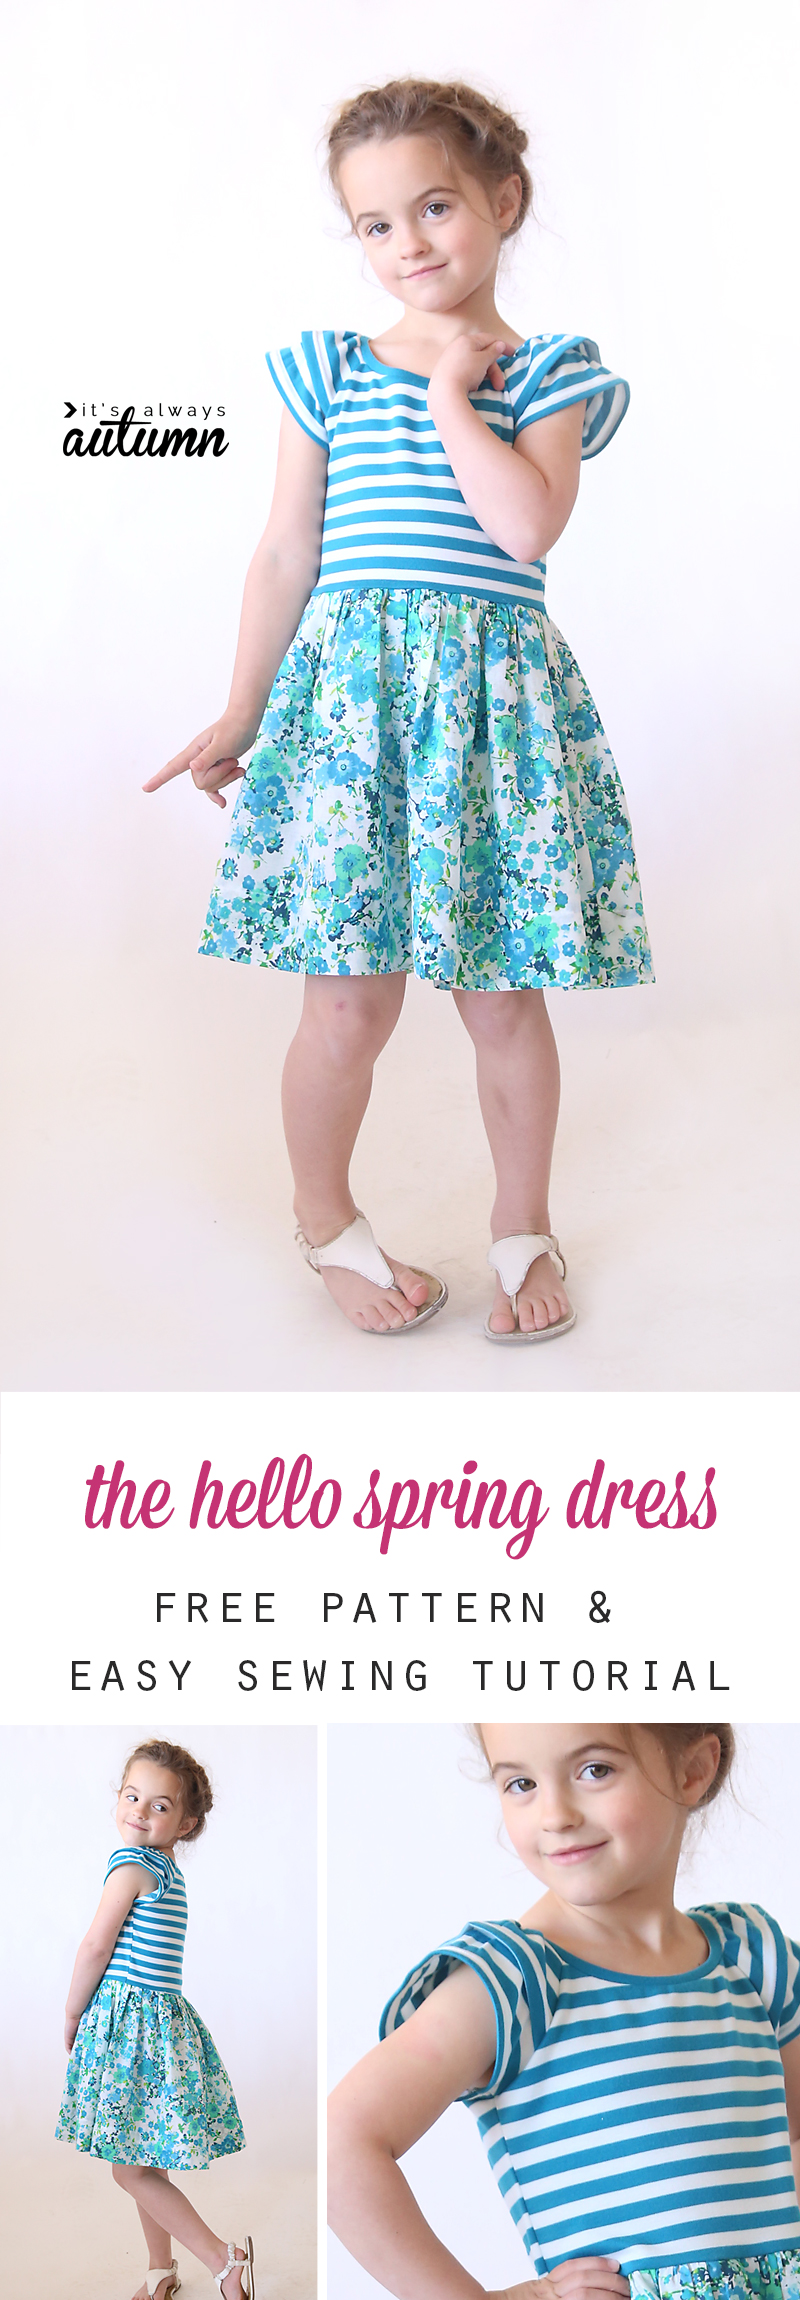 So cute! Free printable PDF pattern for this easy to sew girls' dress or top, plus a great step by step photo tutorial. Pattern comes in girls size 5.